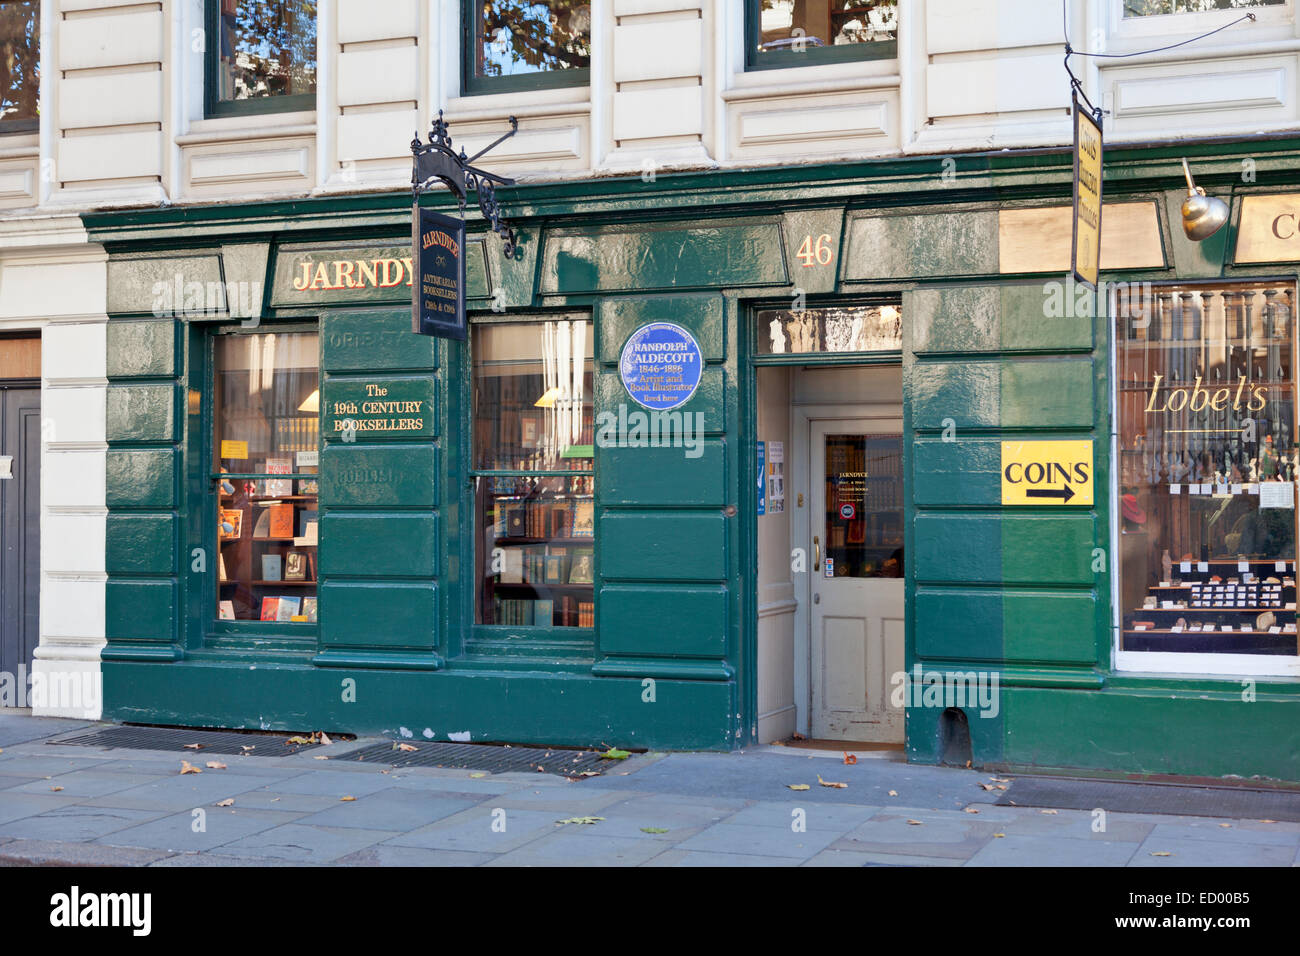 Jarndyce Book Shop - The 19th Century Bookseller - Stock Image